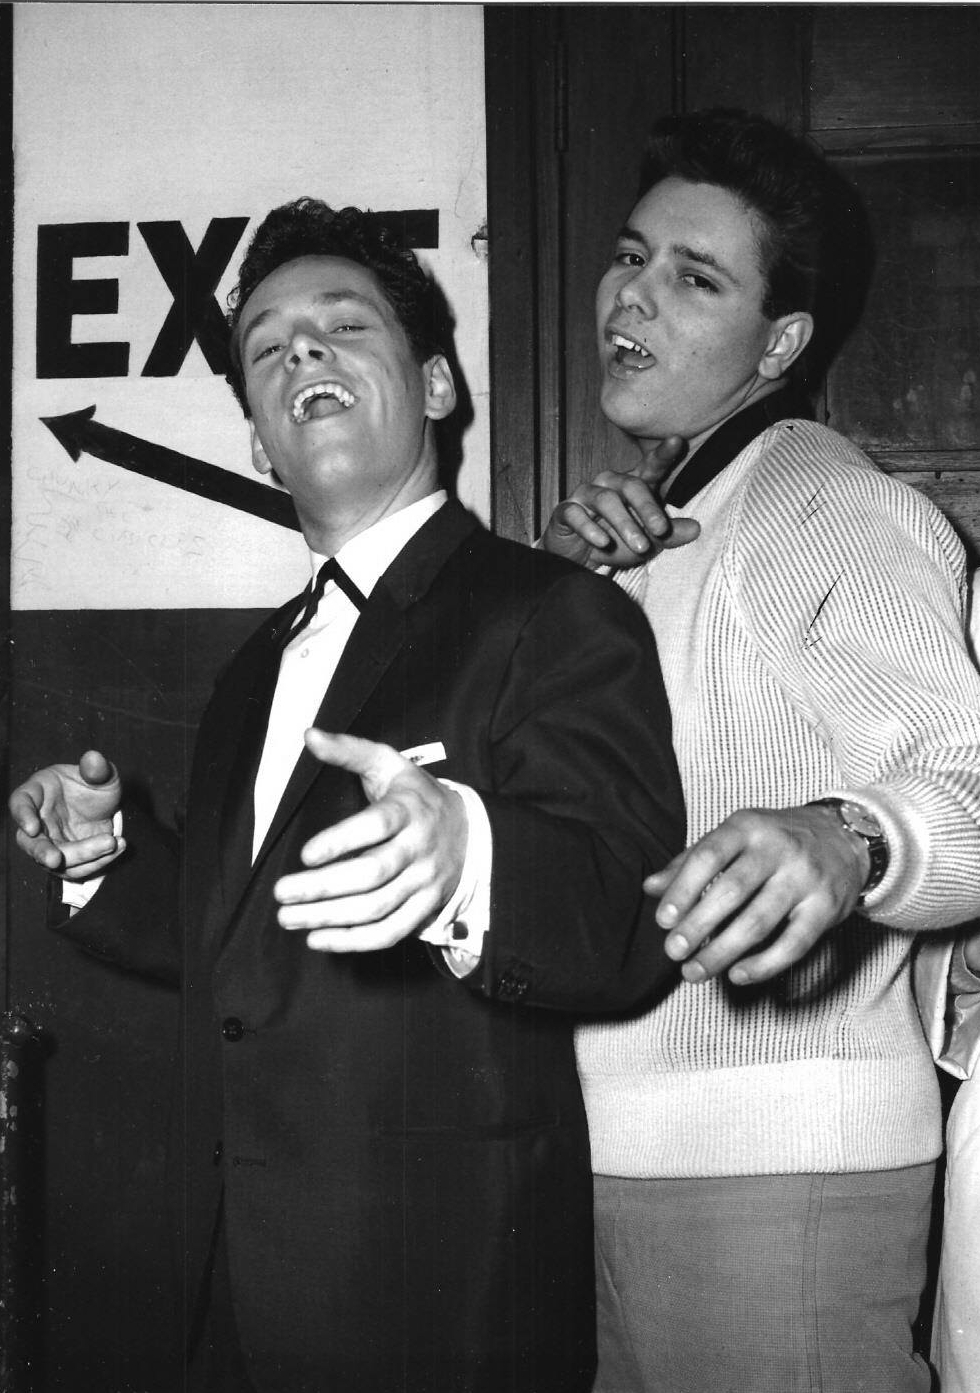 Freddy Lloyd and Cliff Richard.jpg